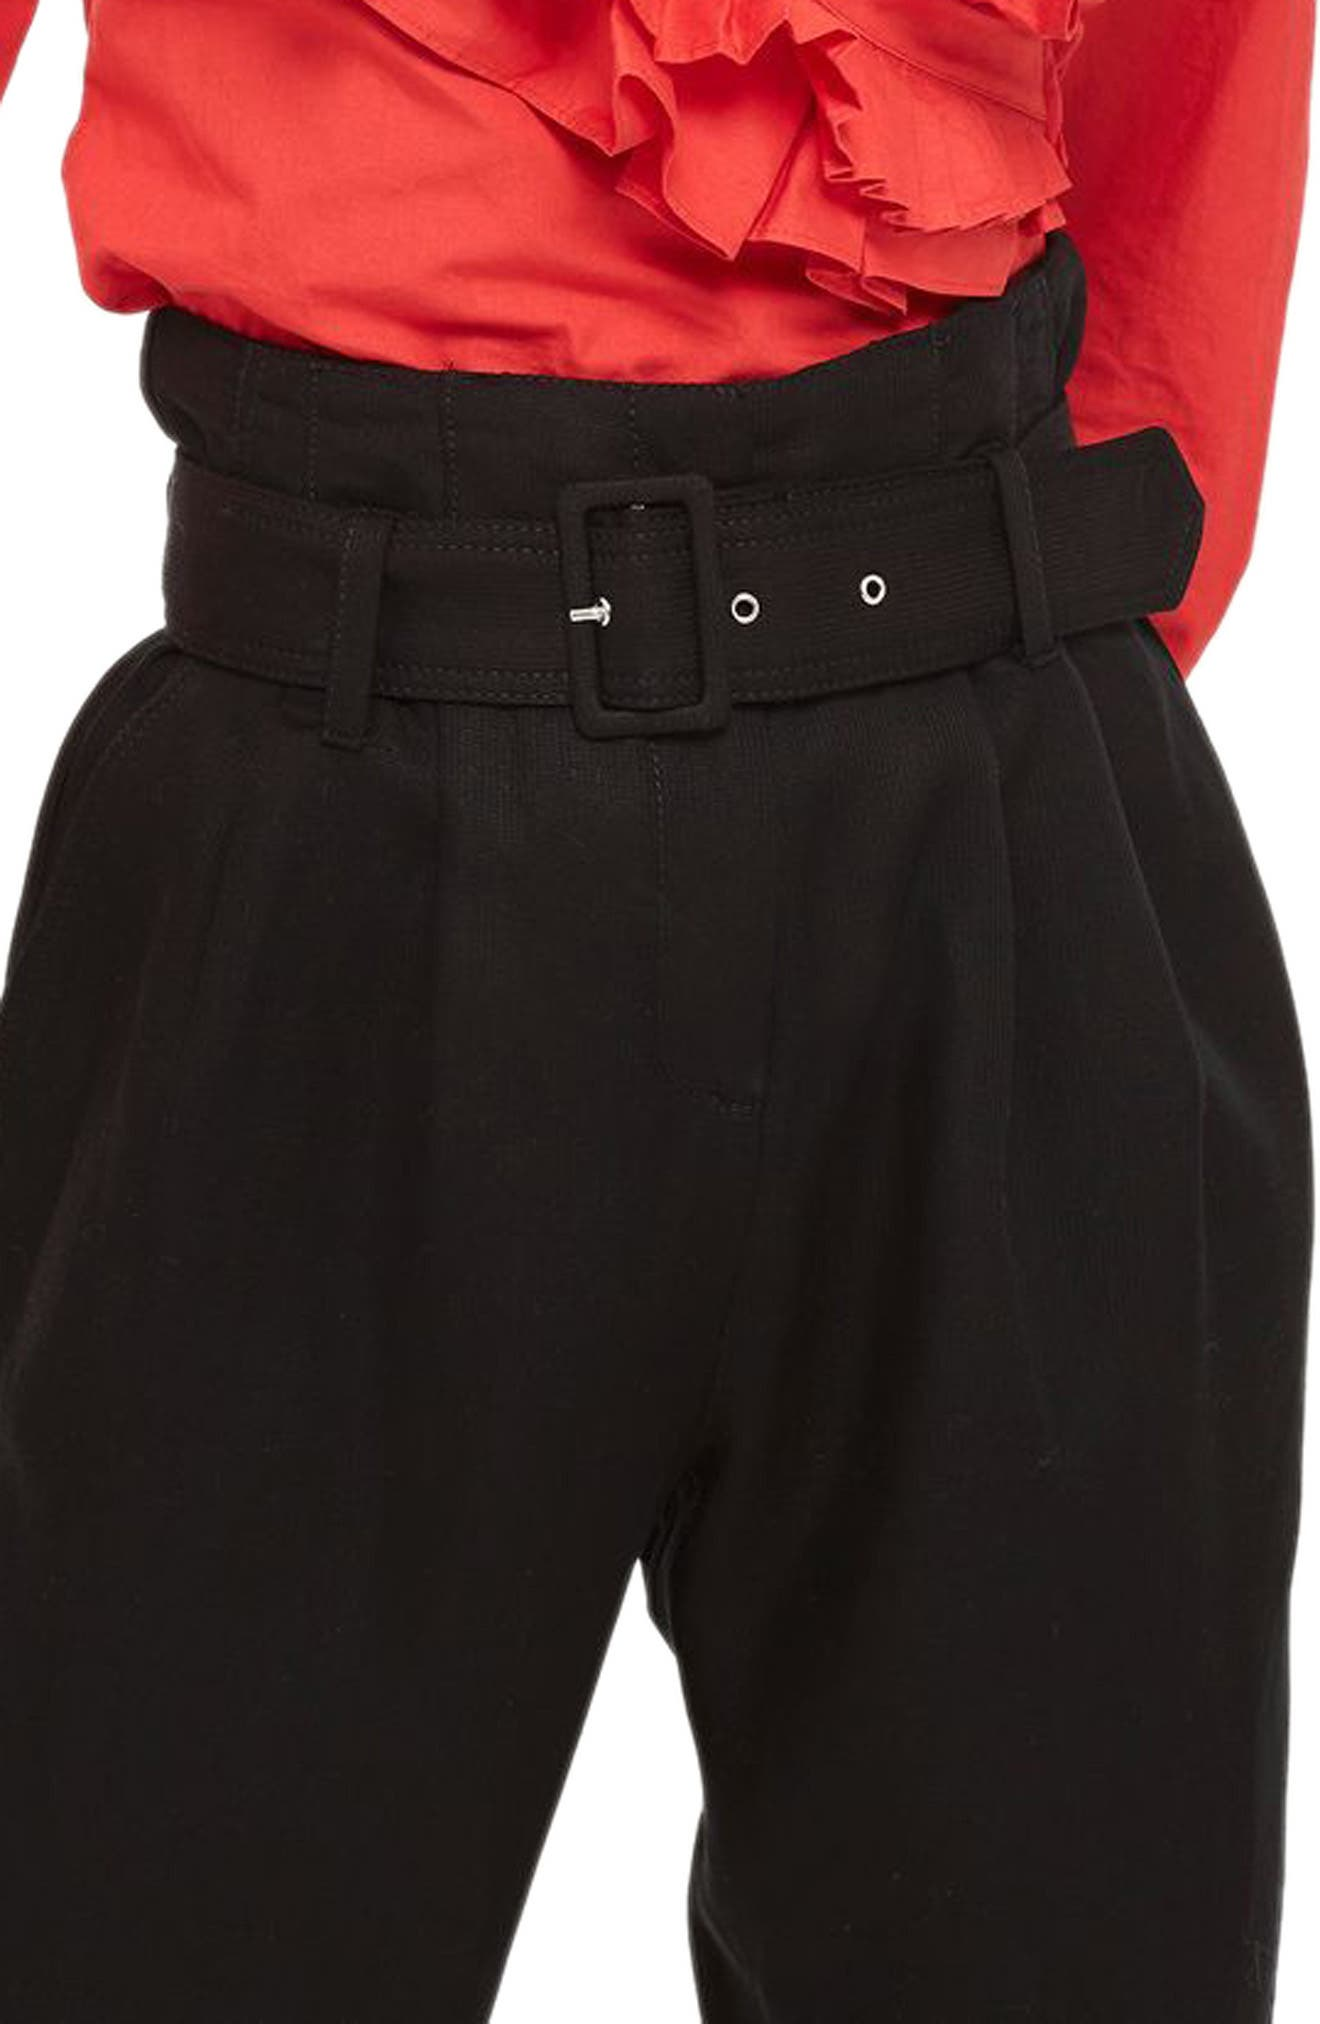 Mensy Belted Trousers,                             Alternate thumbnail 3, color,                             001